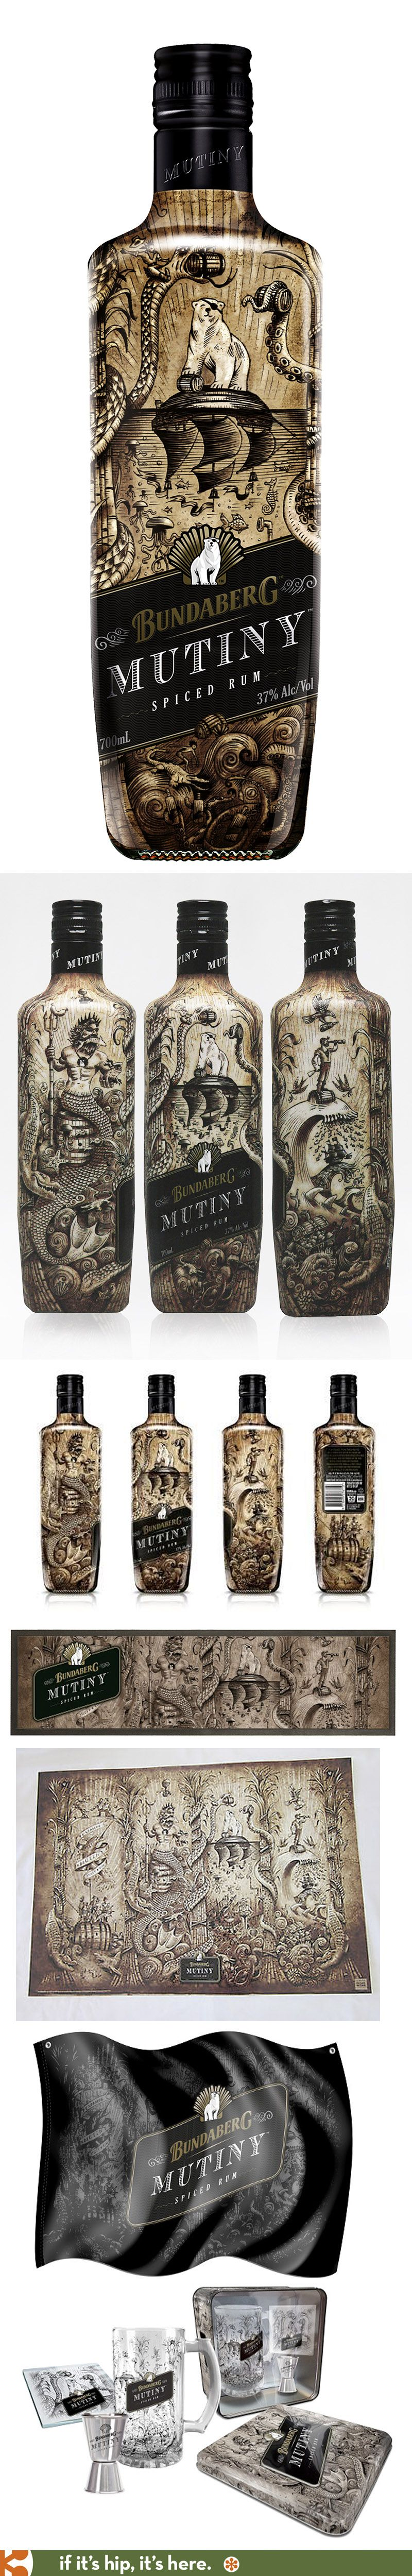 Australia's Bundaberg Mutiny Spiced Rum has a wonderfully illustrated bottle and collateral pieces PD